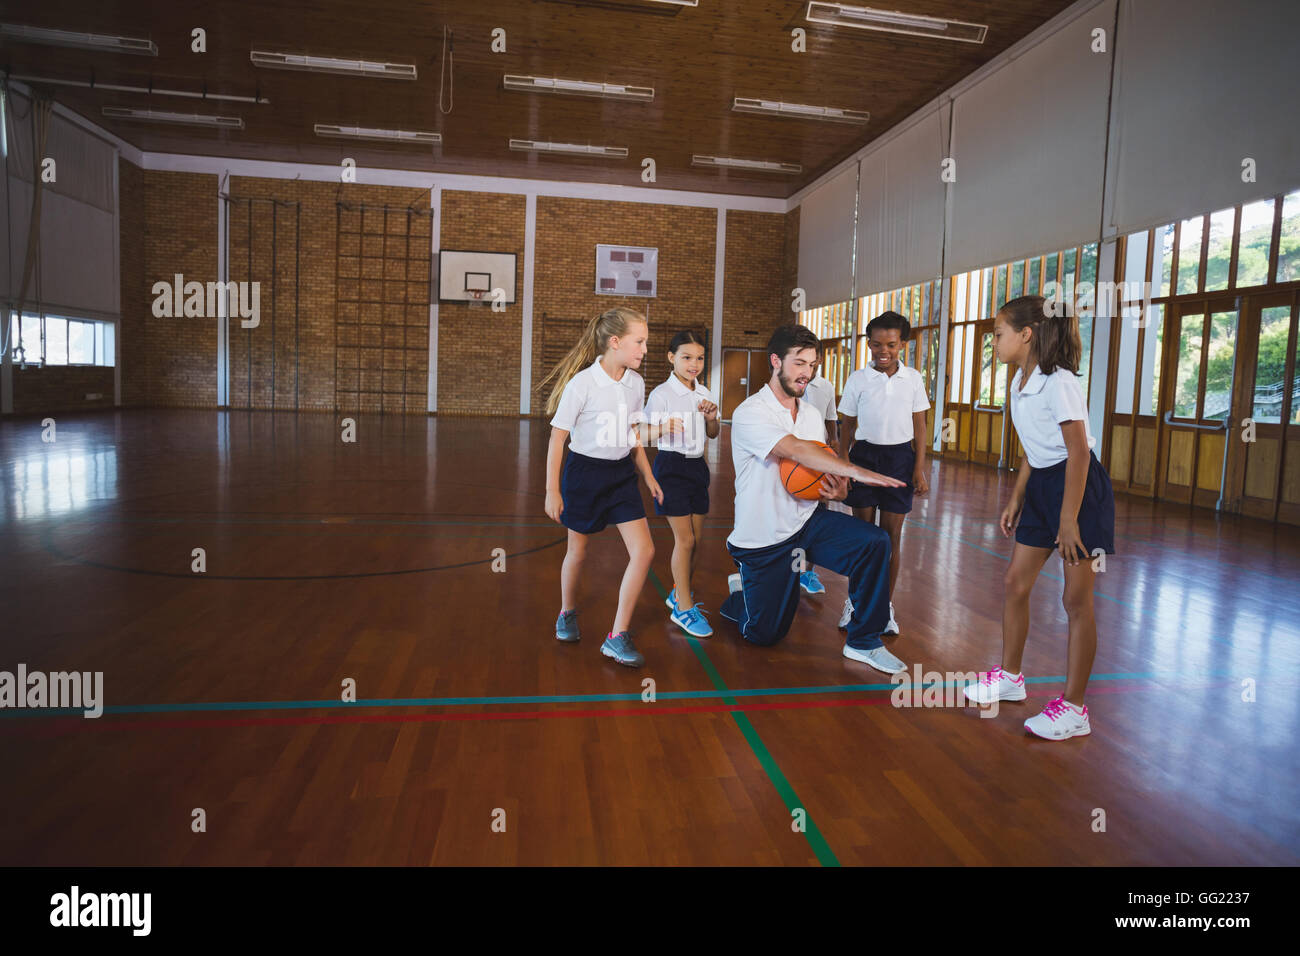 Sports teacher teaching school kids to play basketball - Stock Image